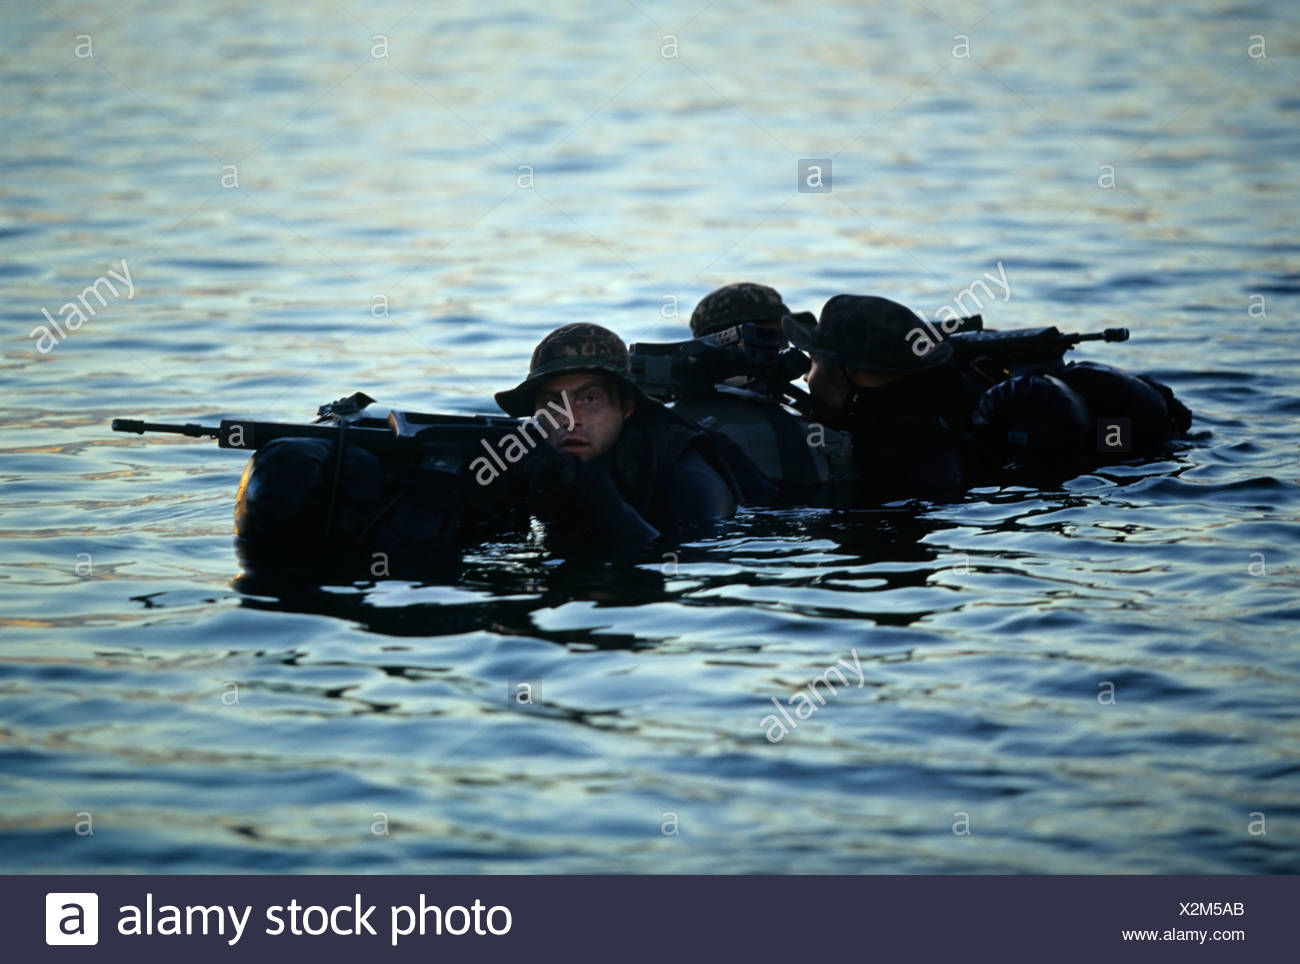 Armed Soldiers of the German special forces 'Kampfschwimmerkompanie' waiting on the surface of the sea for helicopter pickup, E - Stock Image